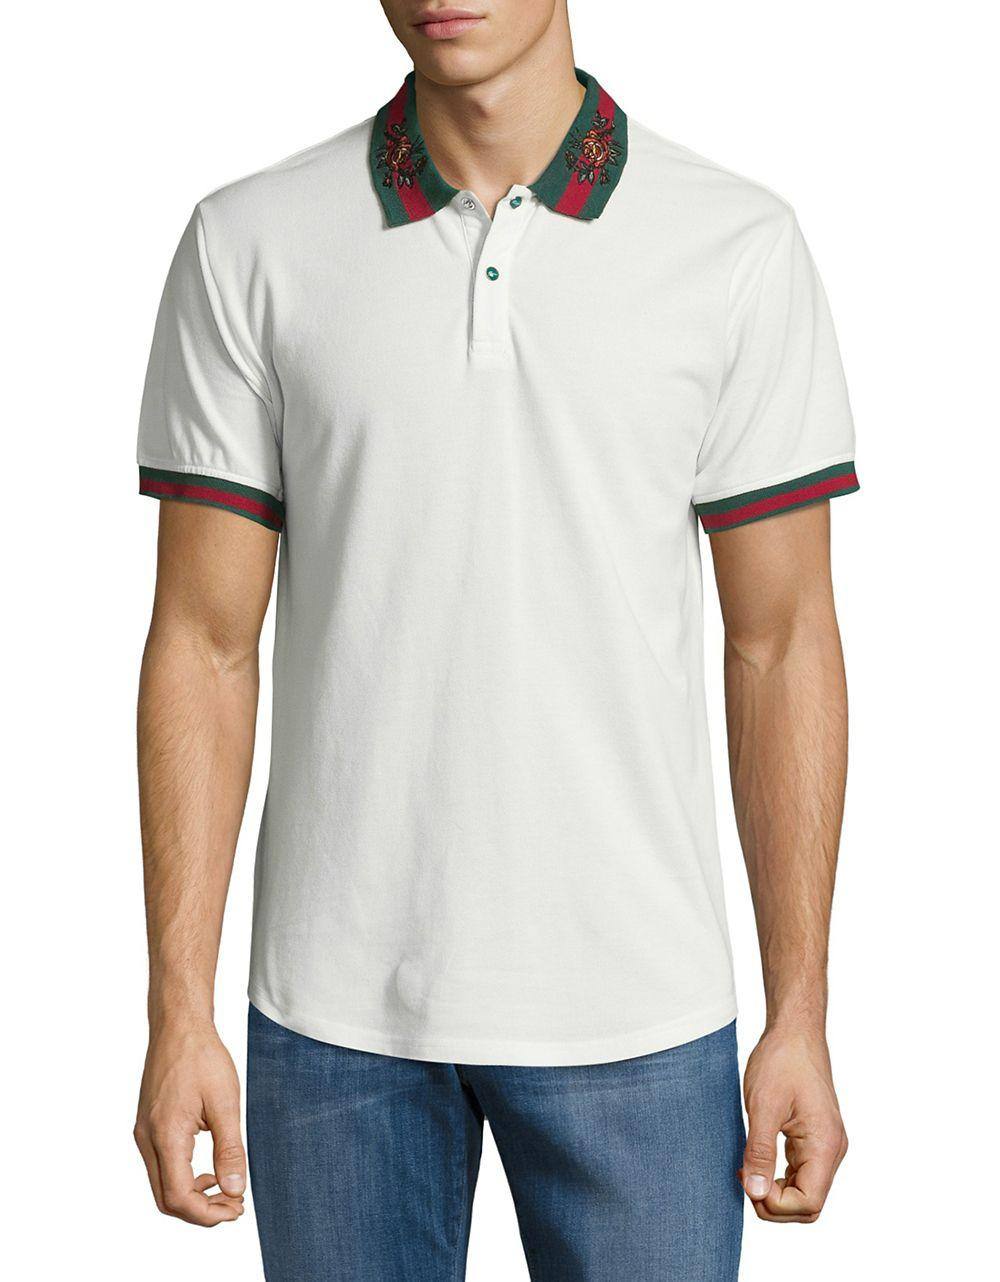 Lyst Reason Contrast Polo Shirt In White For Men